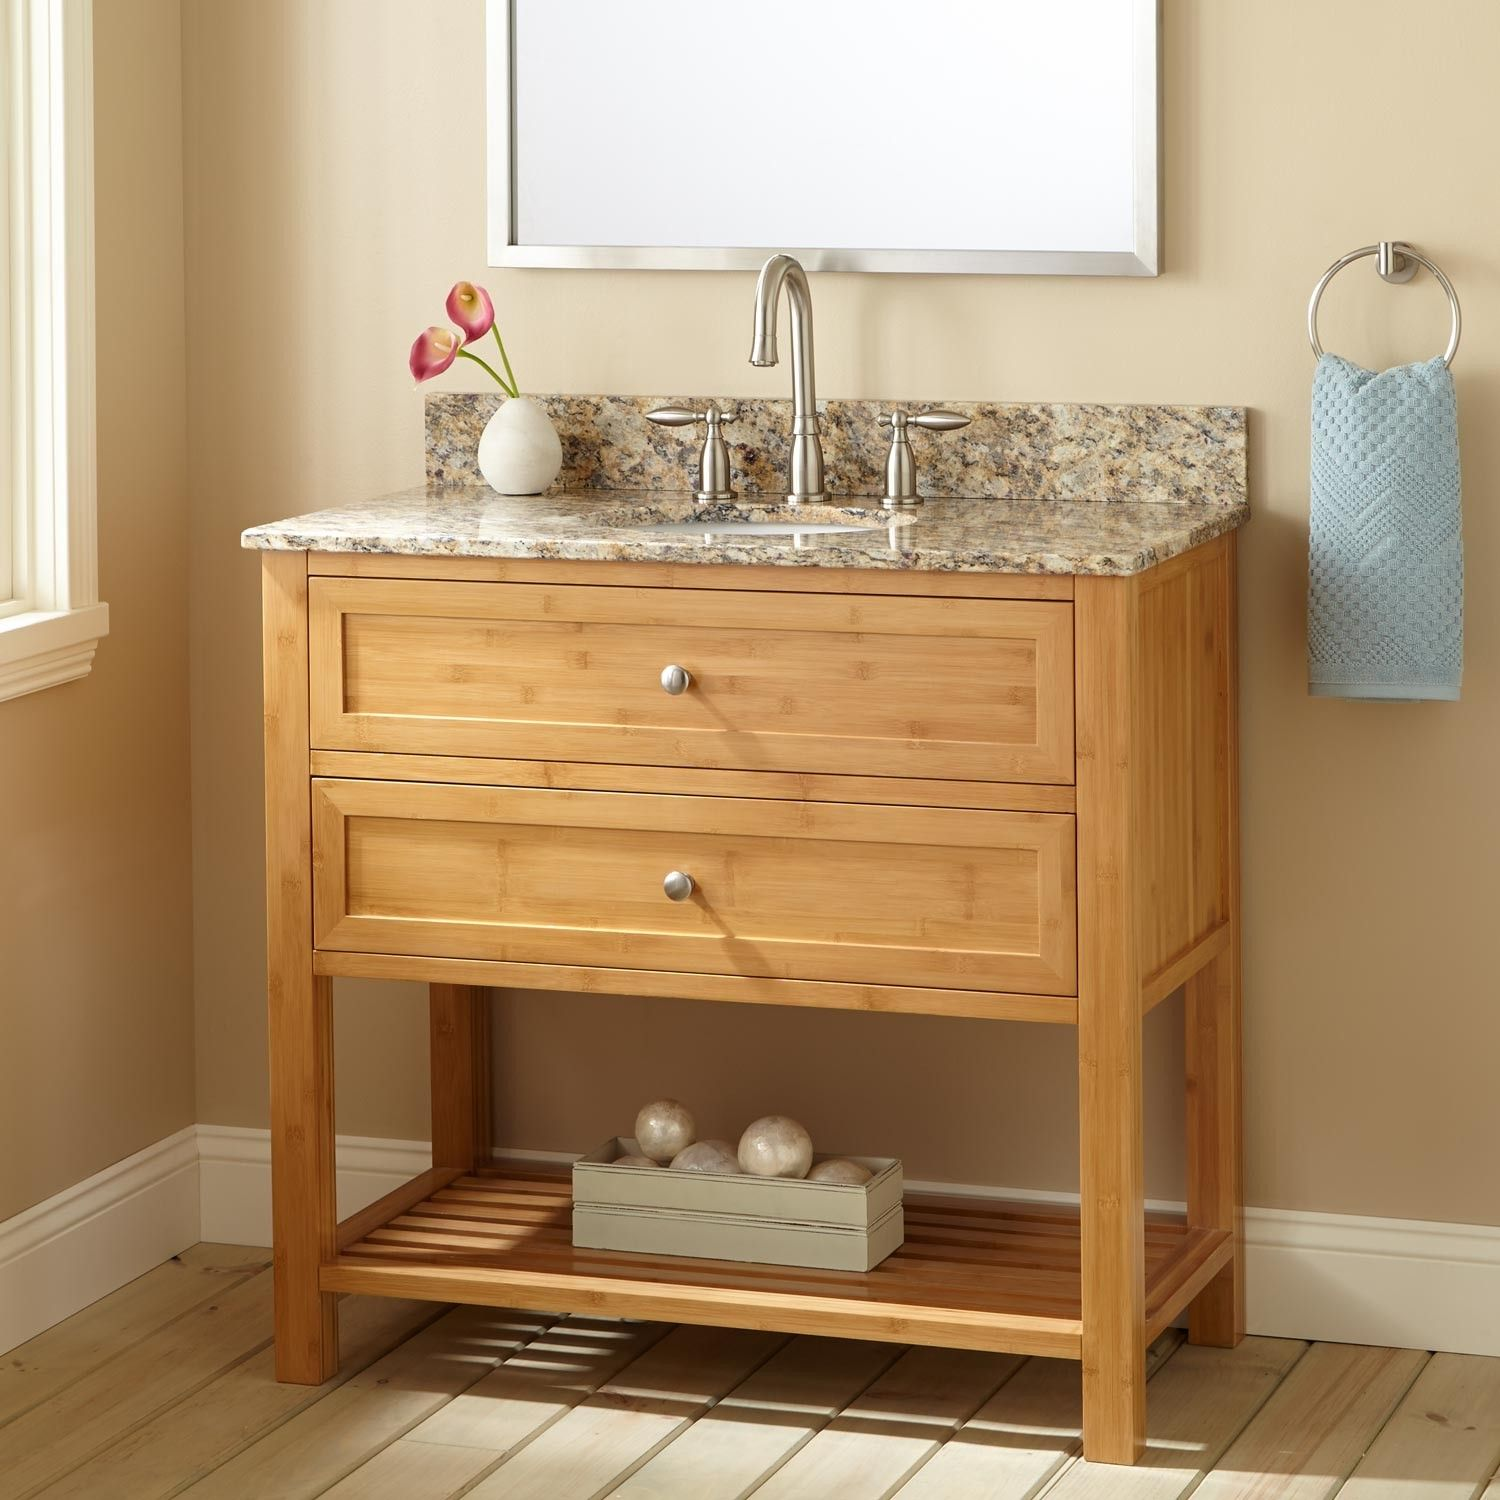 "36"" Narrow Depth Taren Bamboo Vanity For Undermount Sink Mesmerizing Narrow Depth Bathroom Vanity Decorating Inspiration"